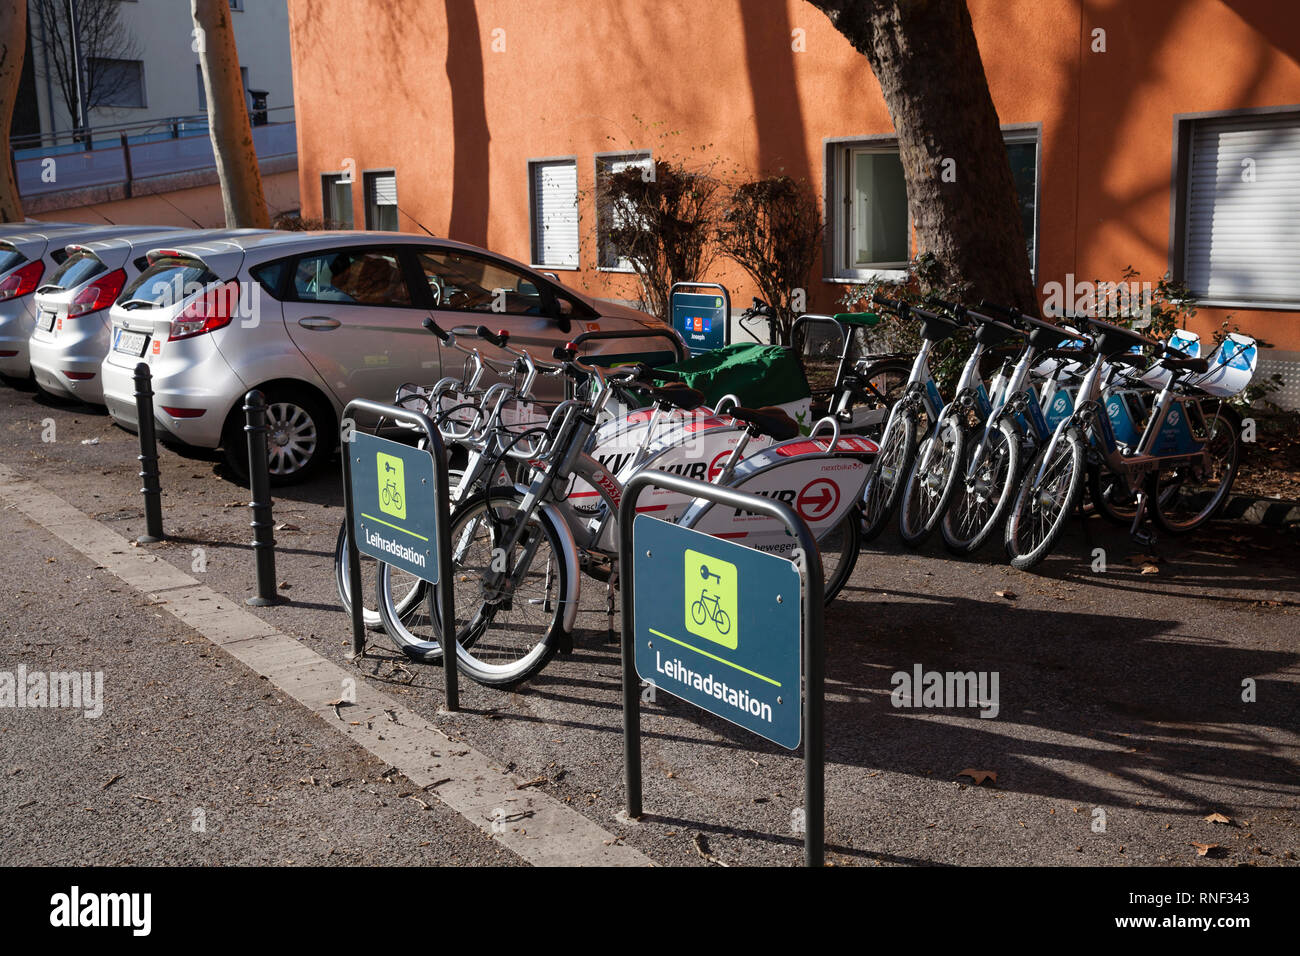 Mobilstation on Josephstreet in the Severins district, Cologne, Germany. The station offers carsharing, bikesharing, cargo bike sharing and bike parki - Stock Image